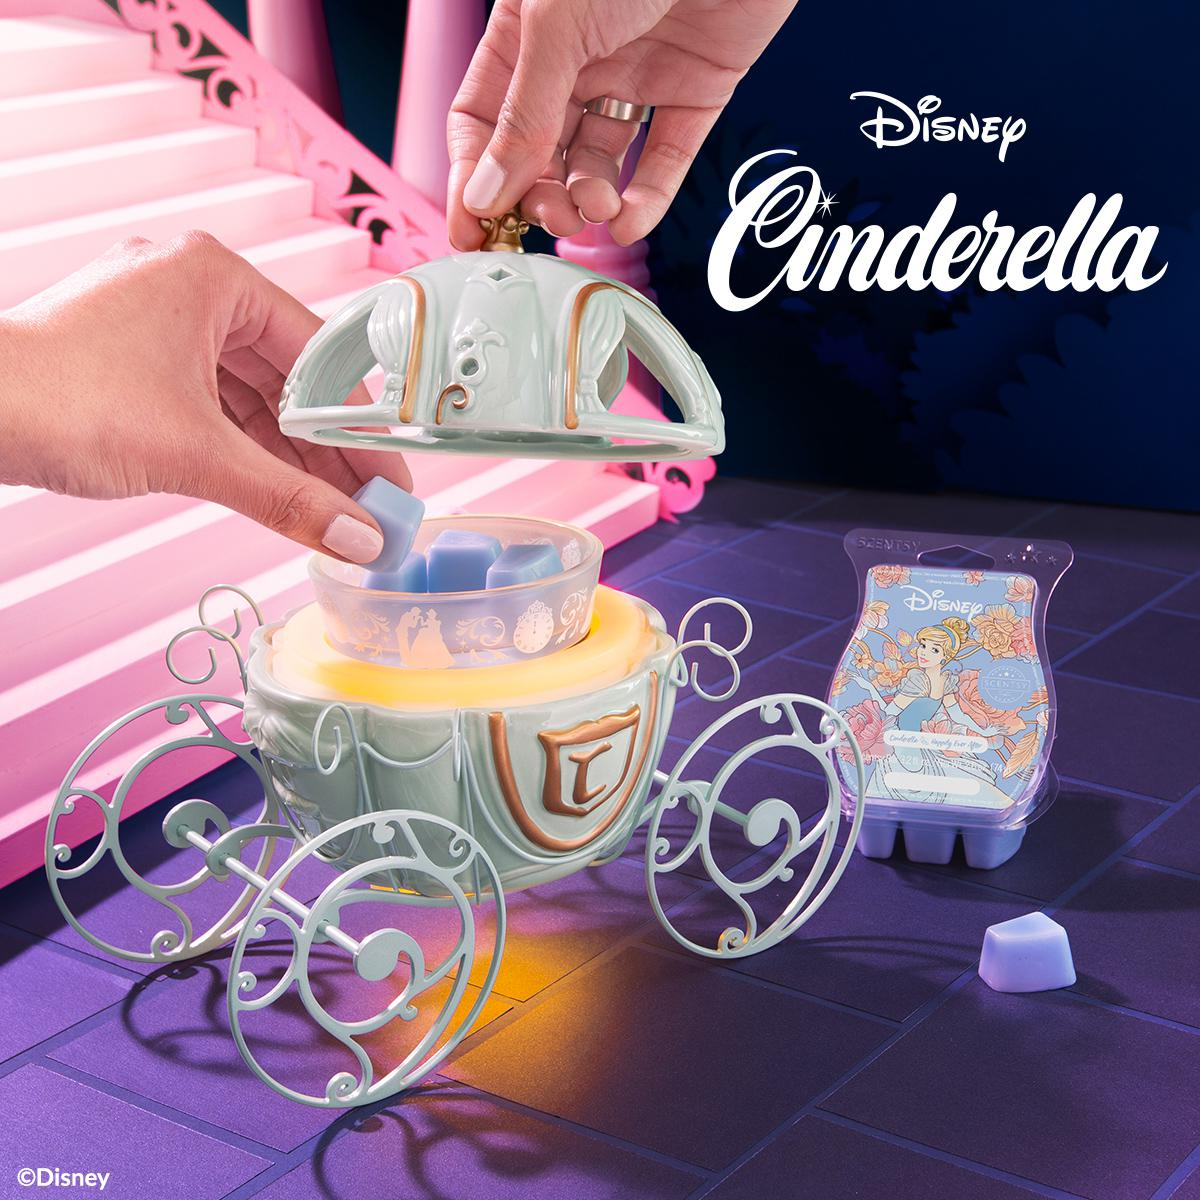 Disney Cinderella Carriage - Scentsy Warmer